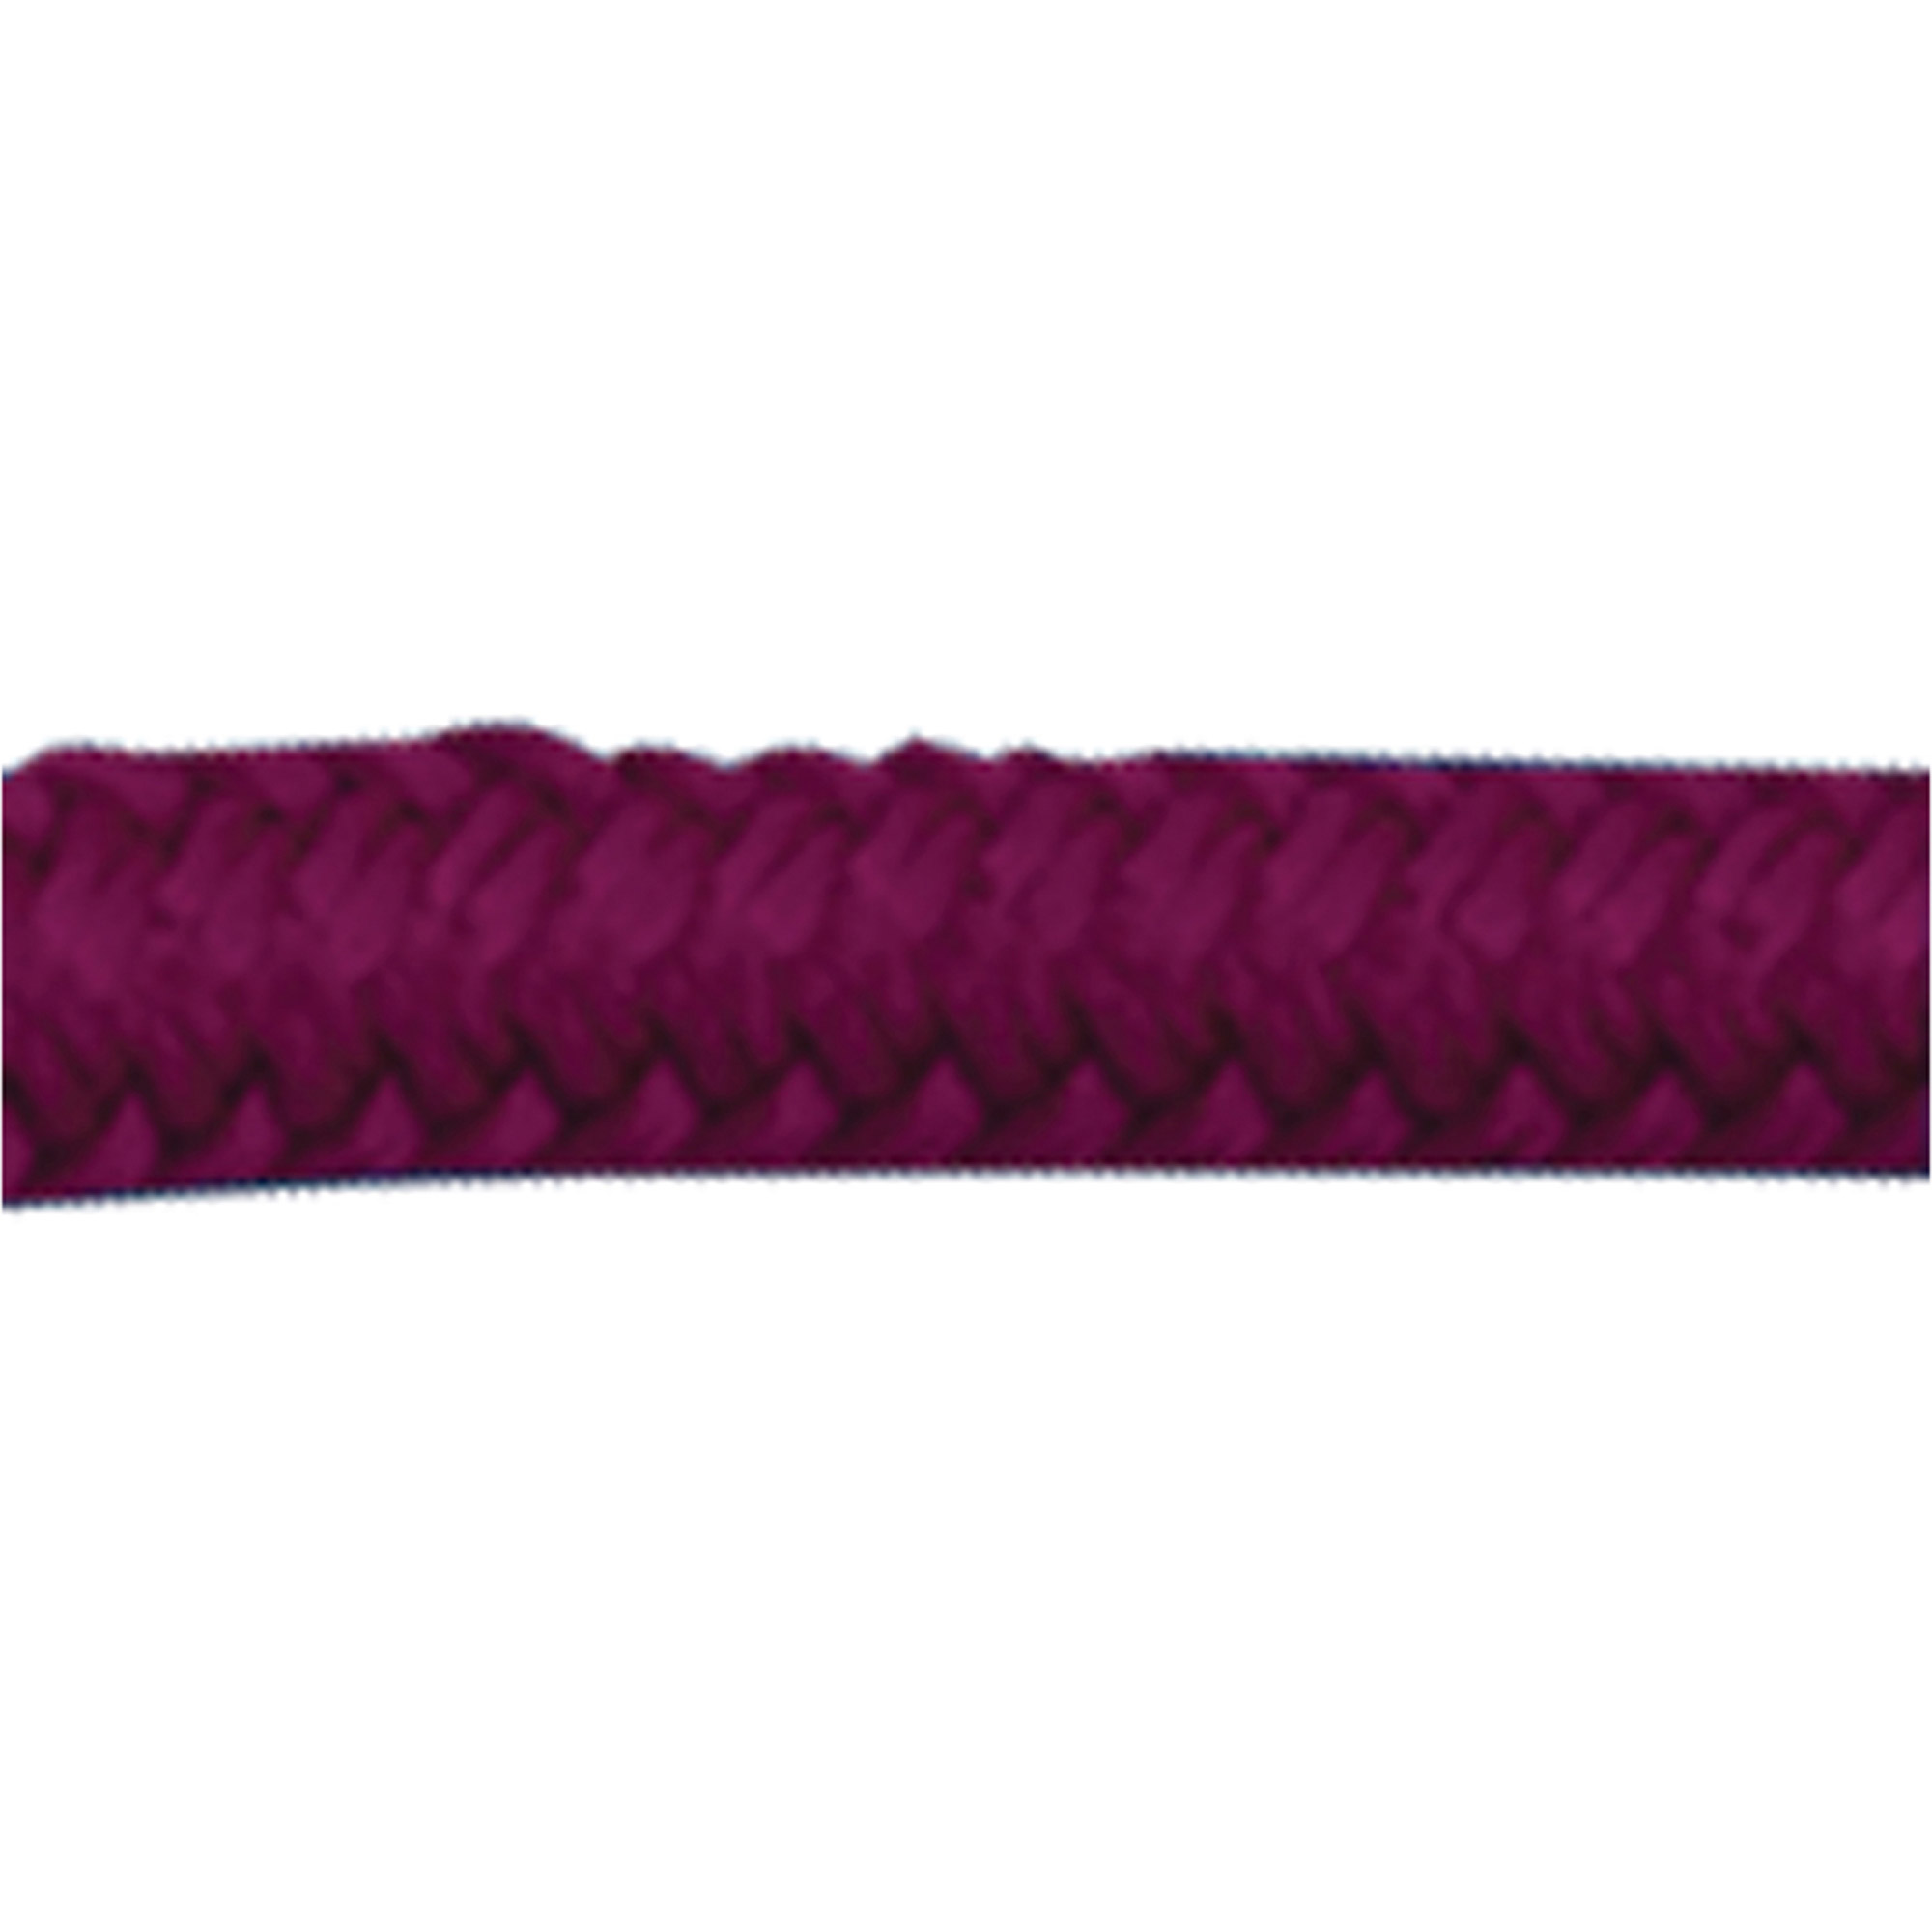 "Sea Dog Dock Line, Double Braided Nylon, 1 2"" x 15', Burgundy by Sea-Dog Line"